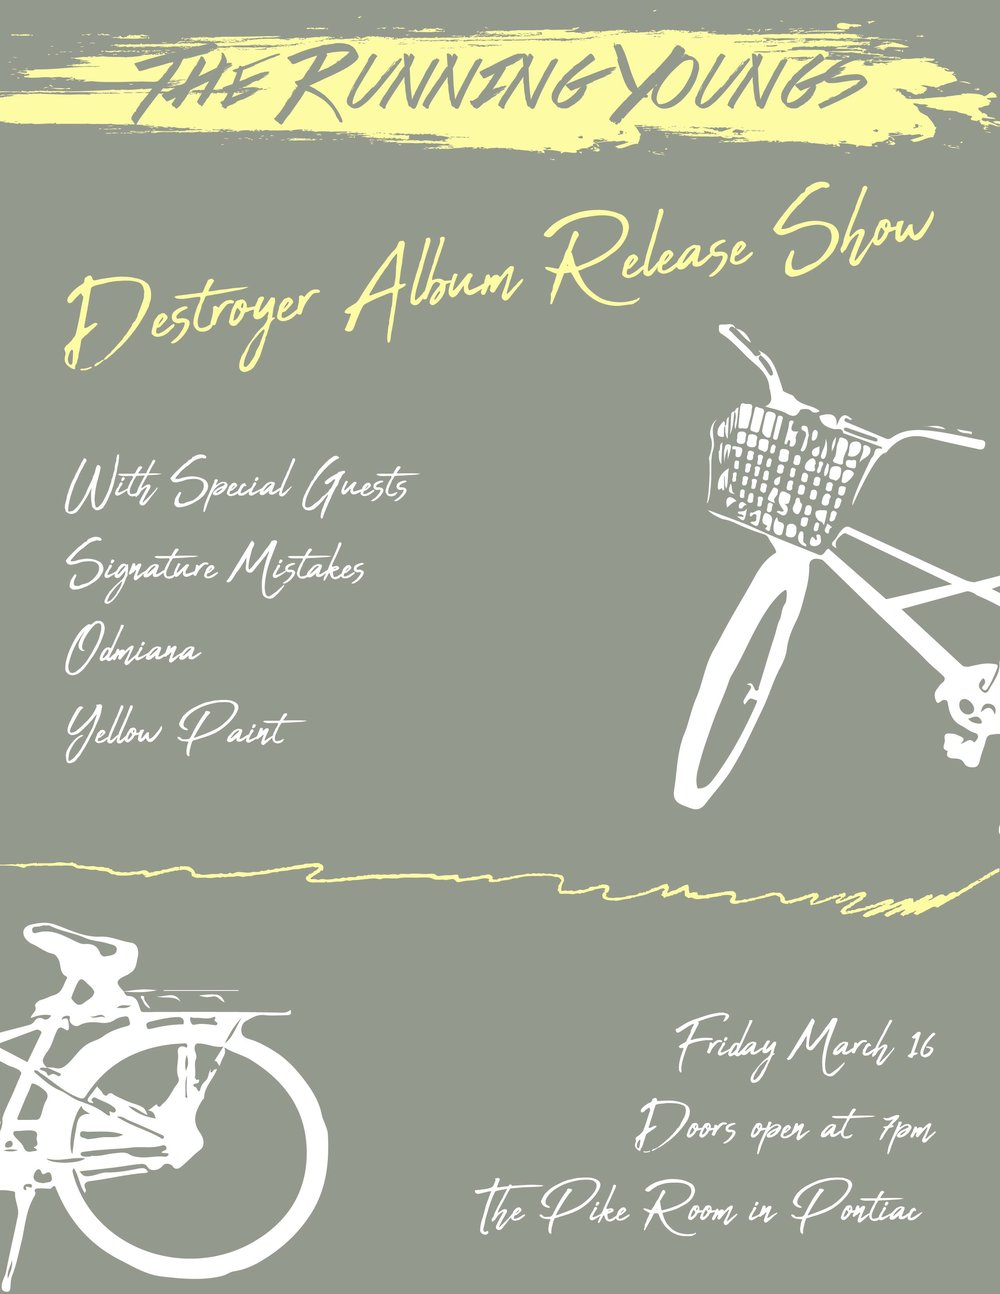 March 16th at the Pike Room - Destroyer Album Release   - With Special Guests Signature Mistakes, Odmiana, and Yellow PaintDoors at 7pm, tickets $10 pre, $12 day ofFacebook Event: https://www.facebook.com/events/1561850550579906/Tickets Online: https://www.ticketweb.com/t3/sale/SaleEventDetail?eventId=8023525&dispatch=loadSelectionData&pl=crofoot&edpPlParam=%3Fpl%3Dcrofoot